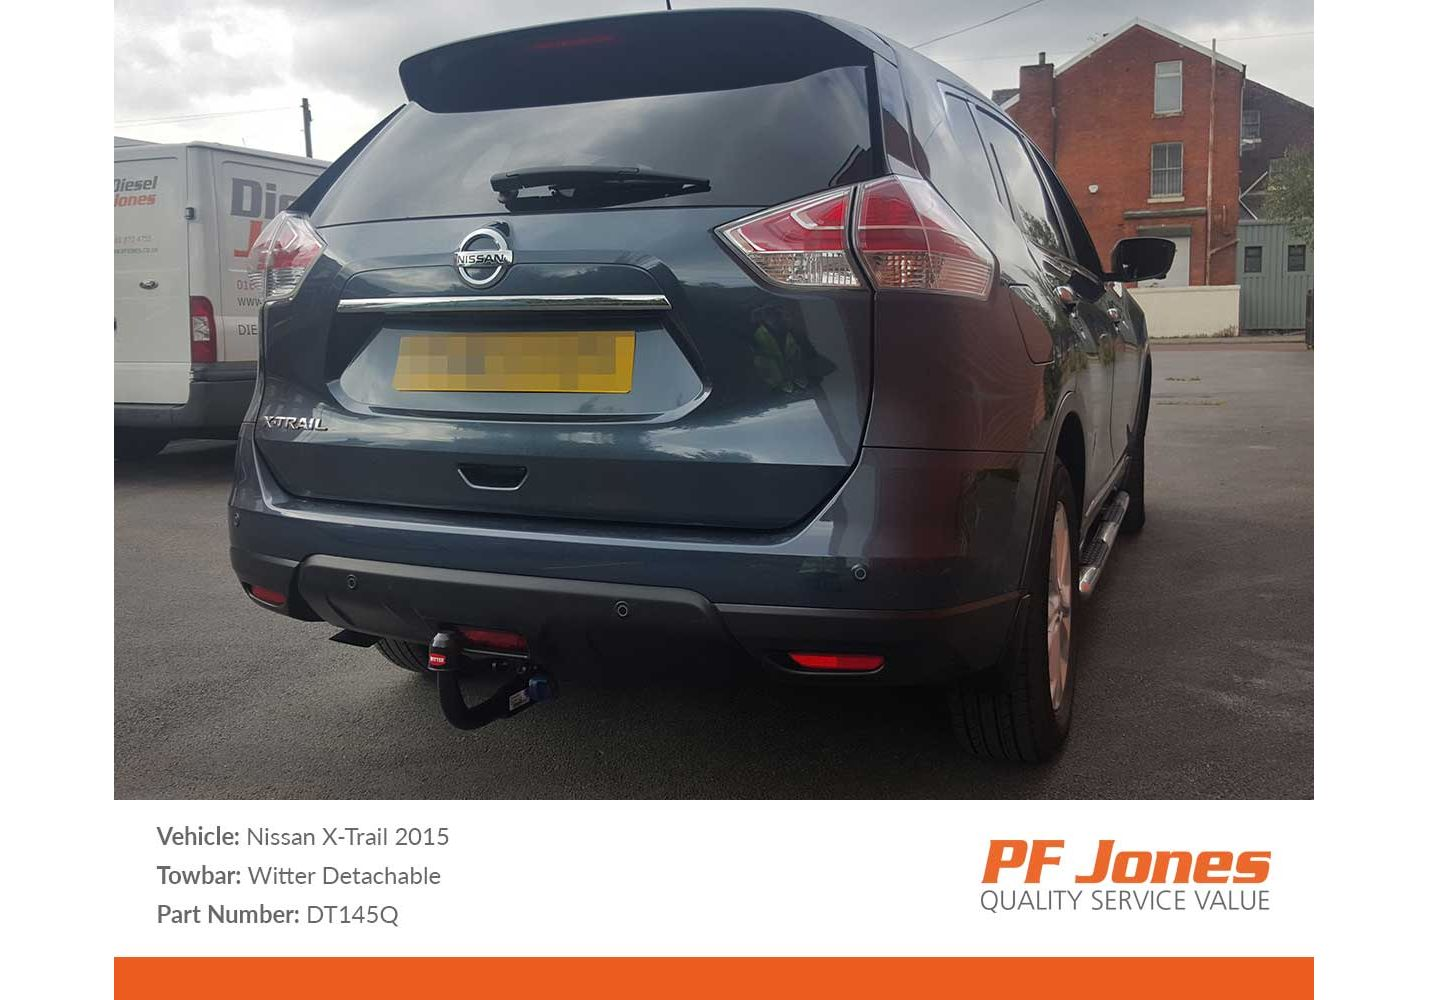 Witter Towbars DT145Q Detachable Swan Neck Towbar for Nissan X-Trail SUV not AdBlue from 2014